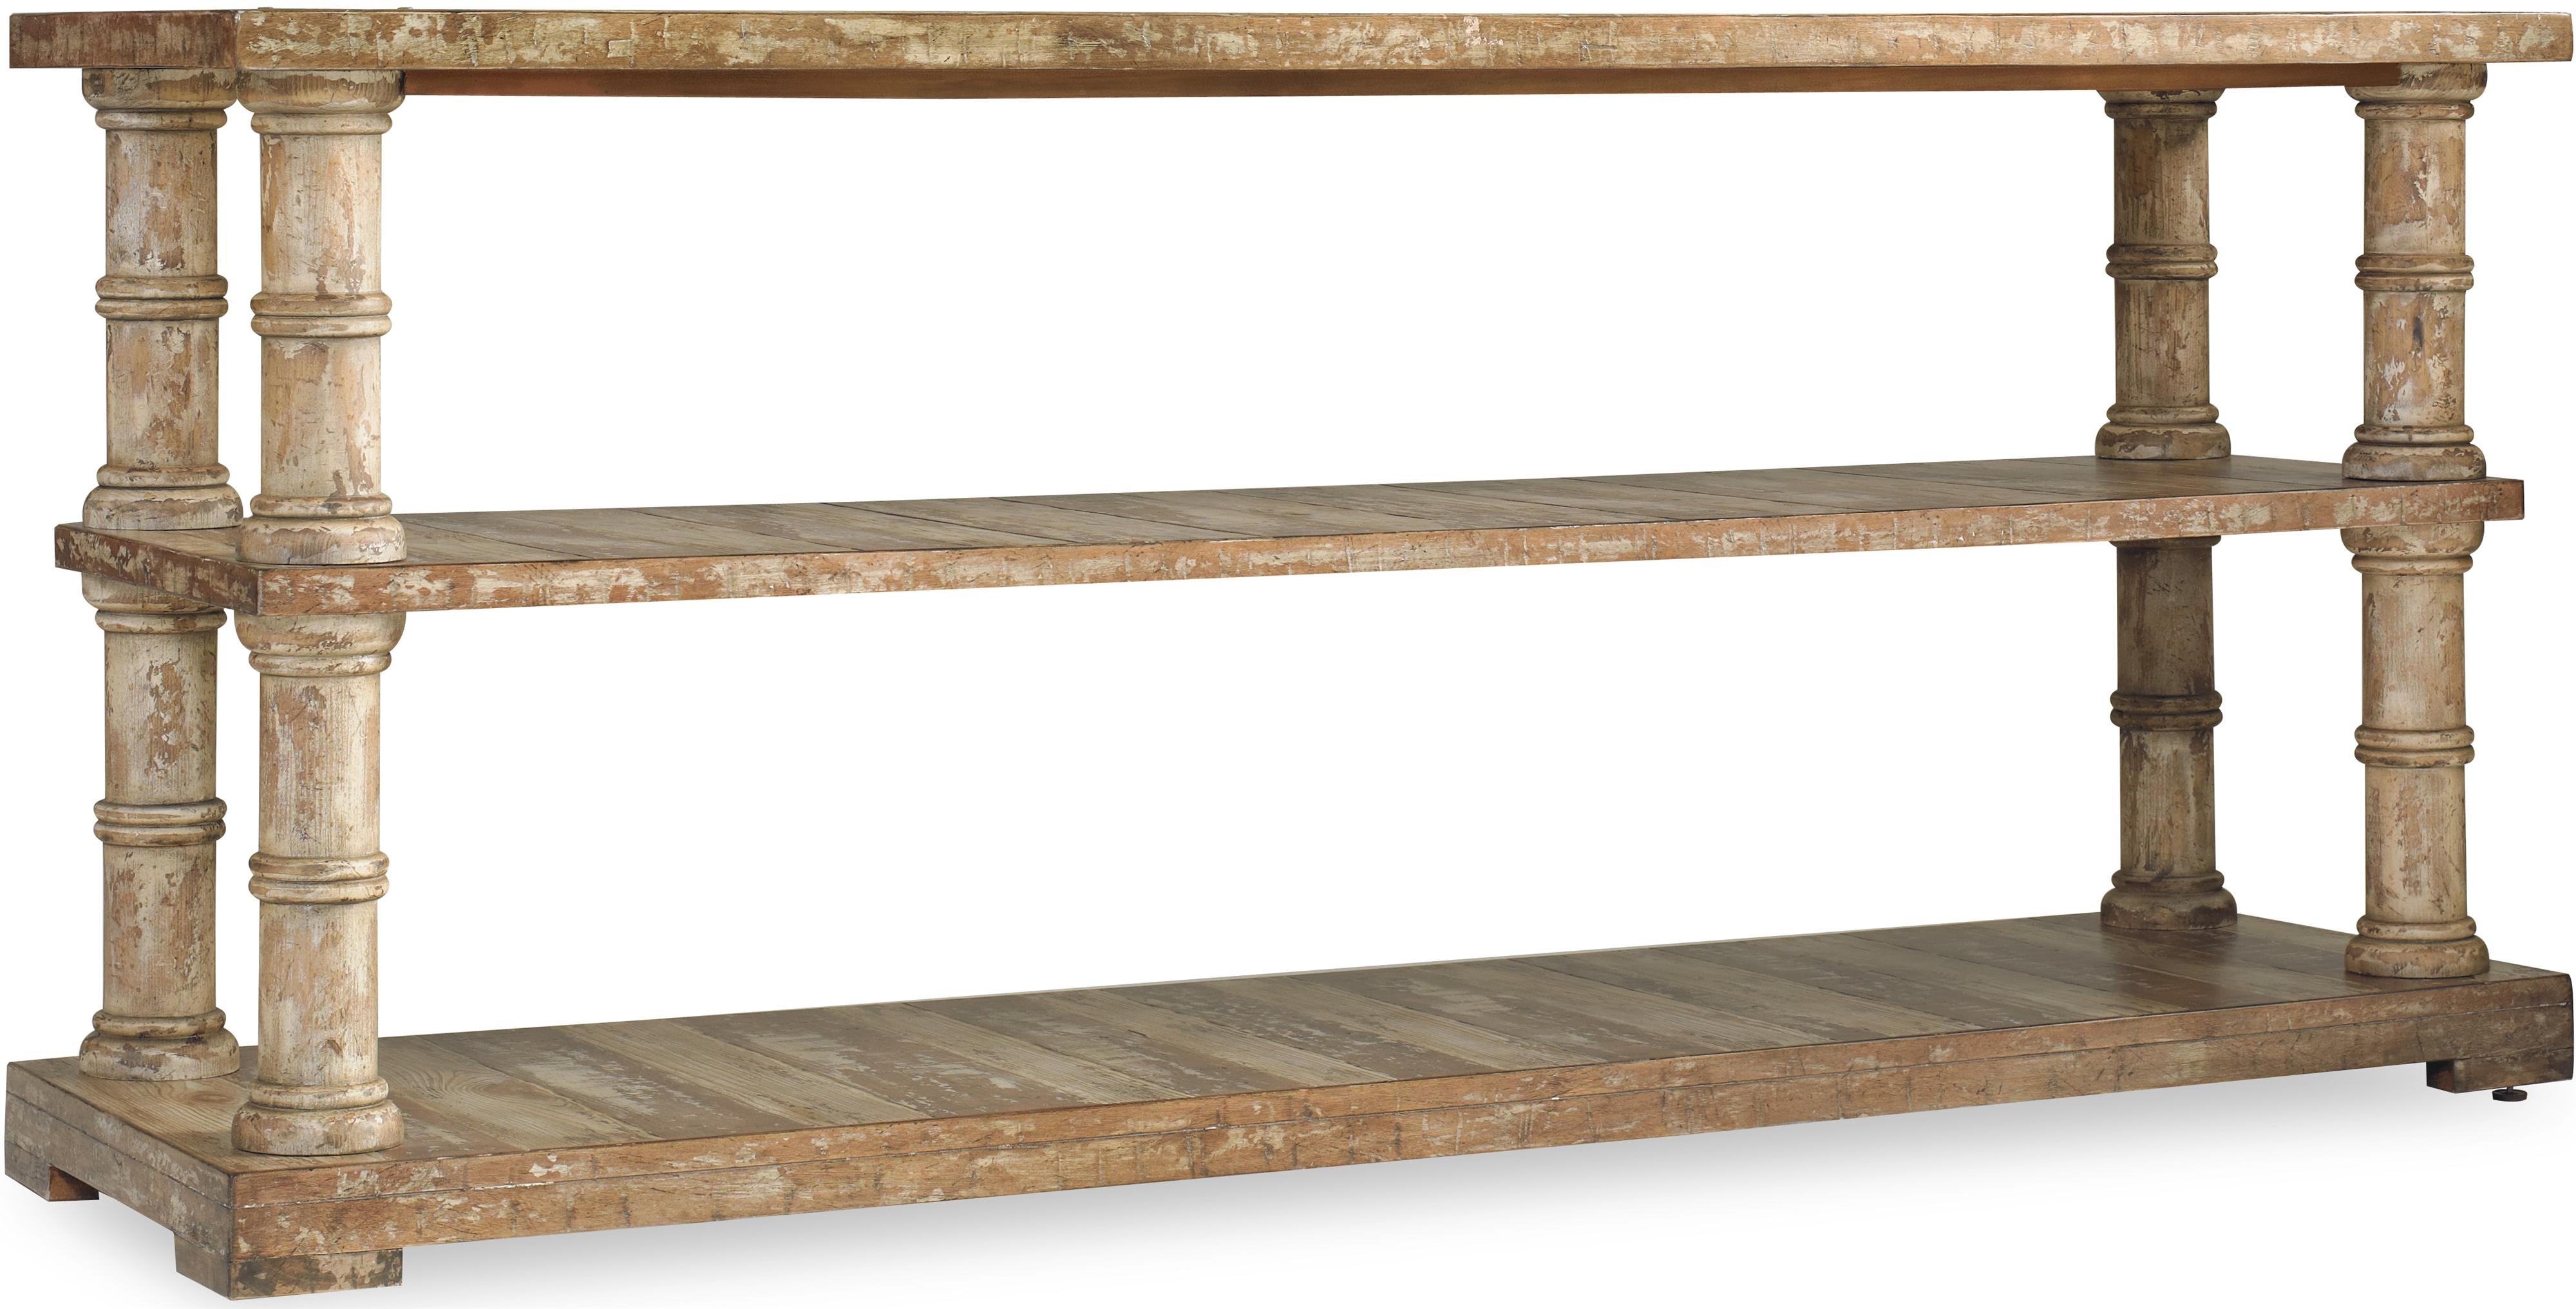 60 inch long sofa table refil sofa for 60 wide console table